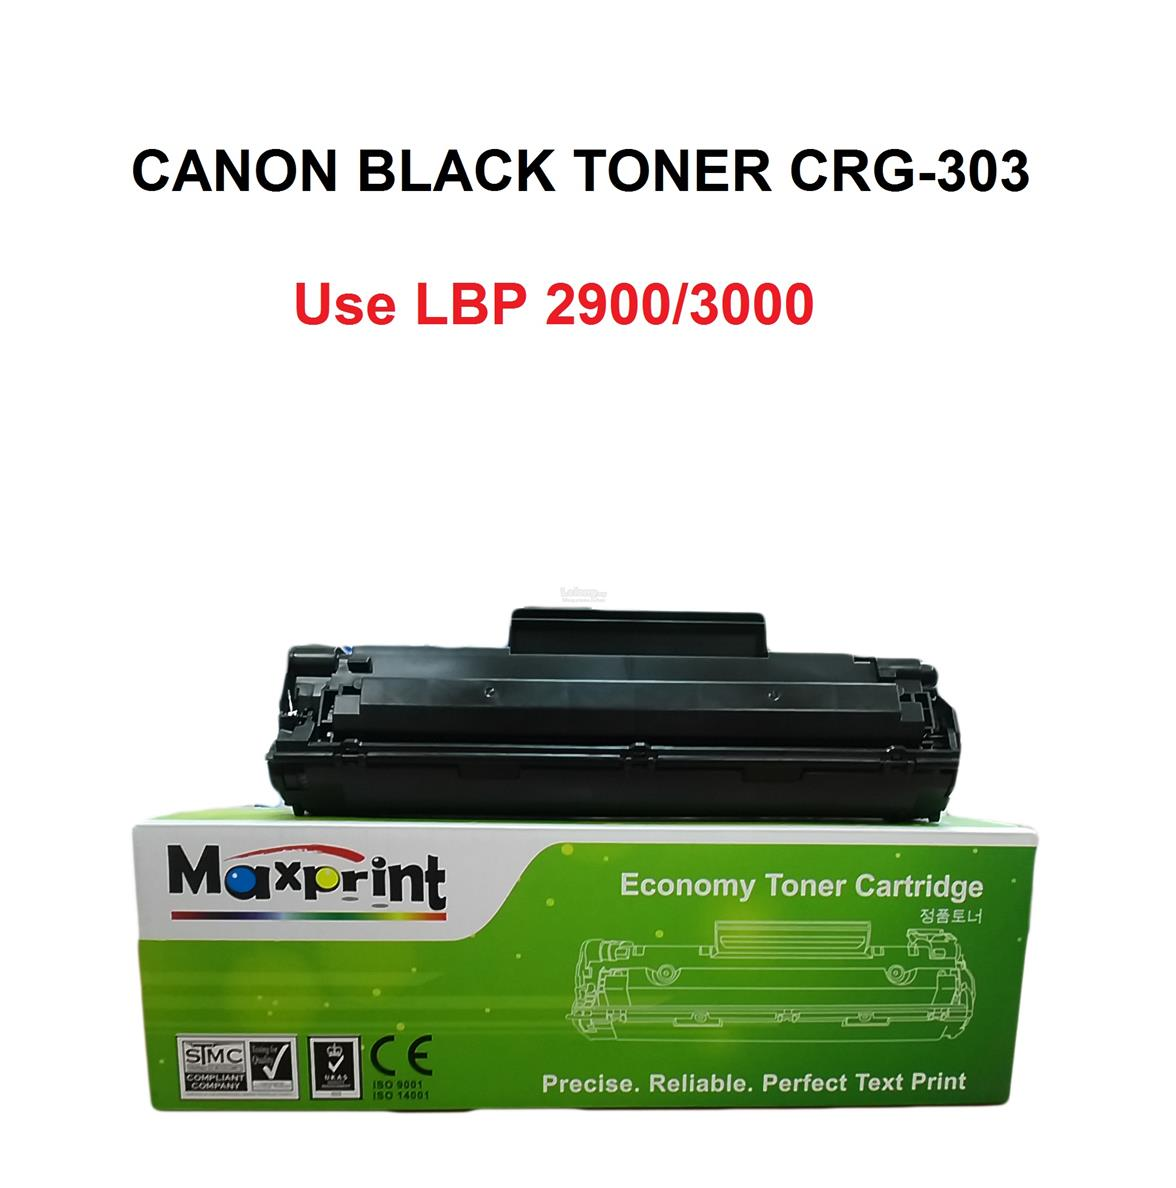 MAXPRINT CANON CRG-303 ECONOMY TONER CARTRIDGE (BLACK)